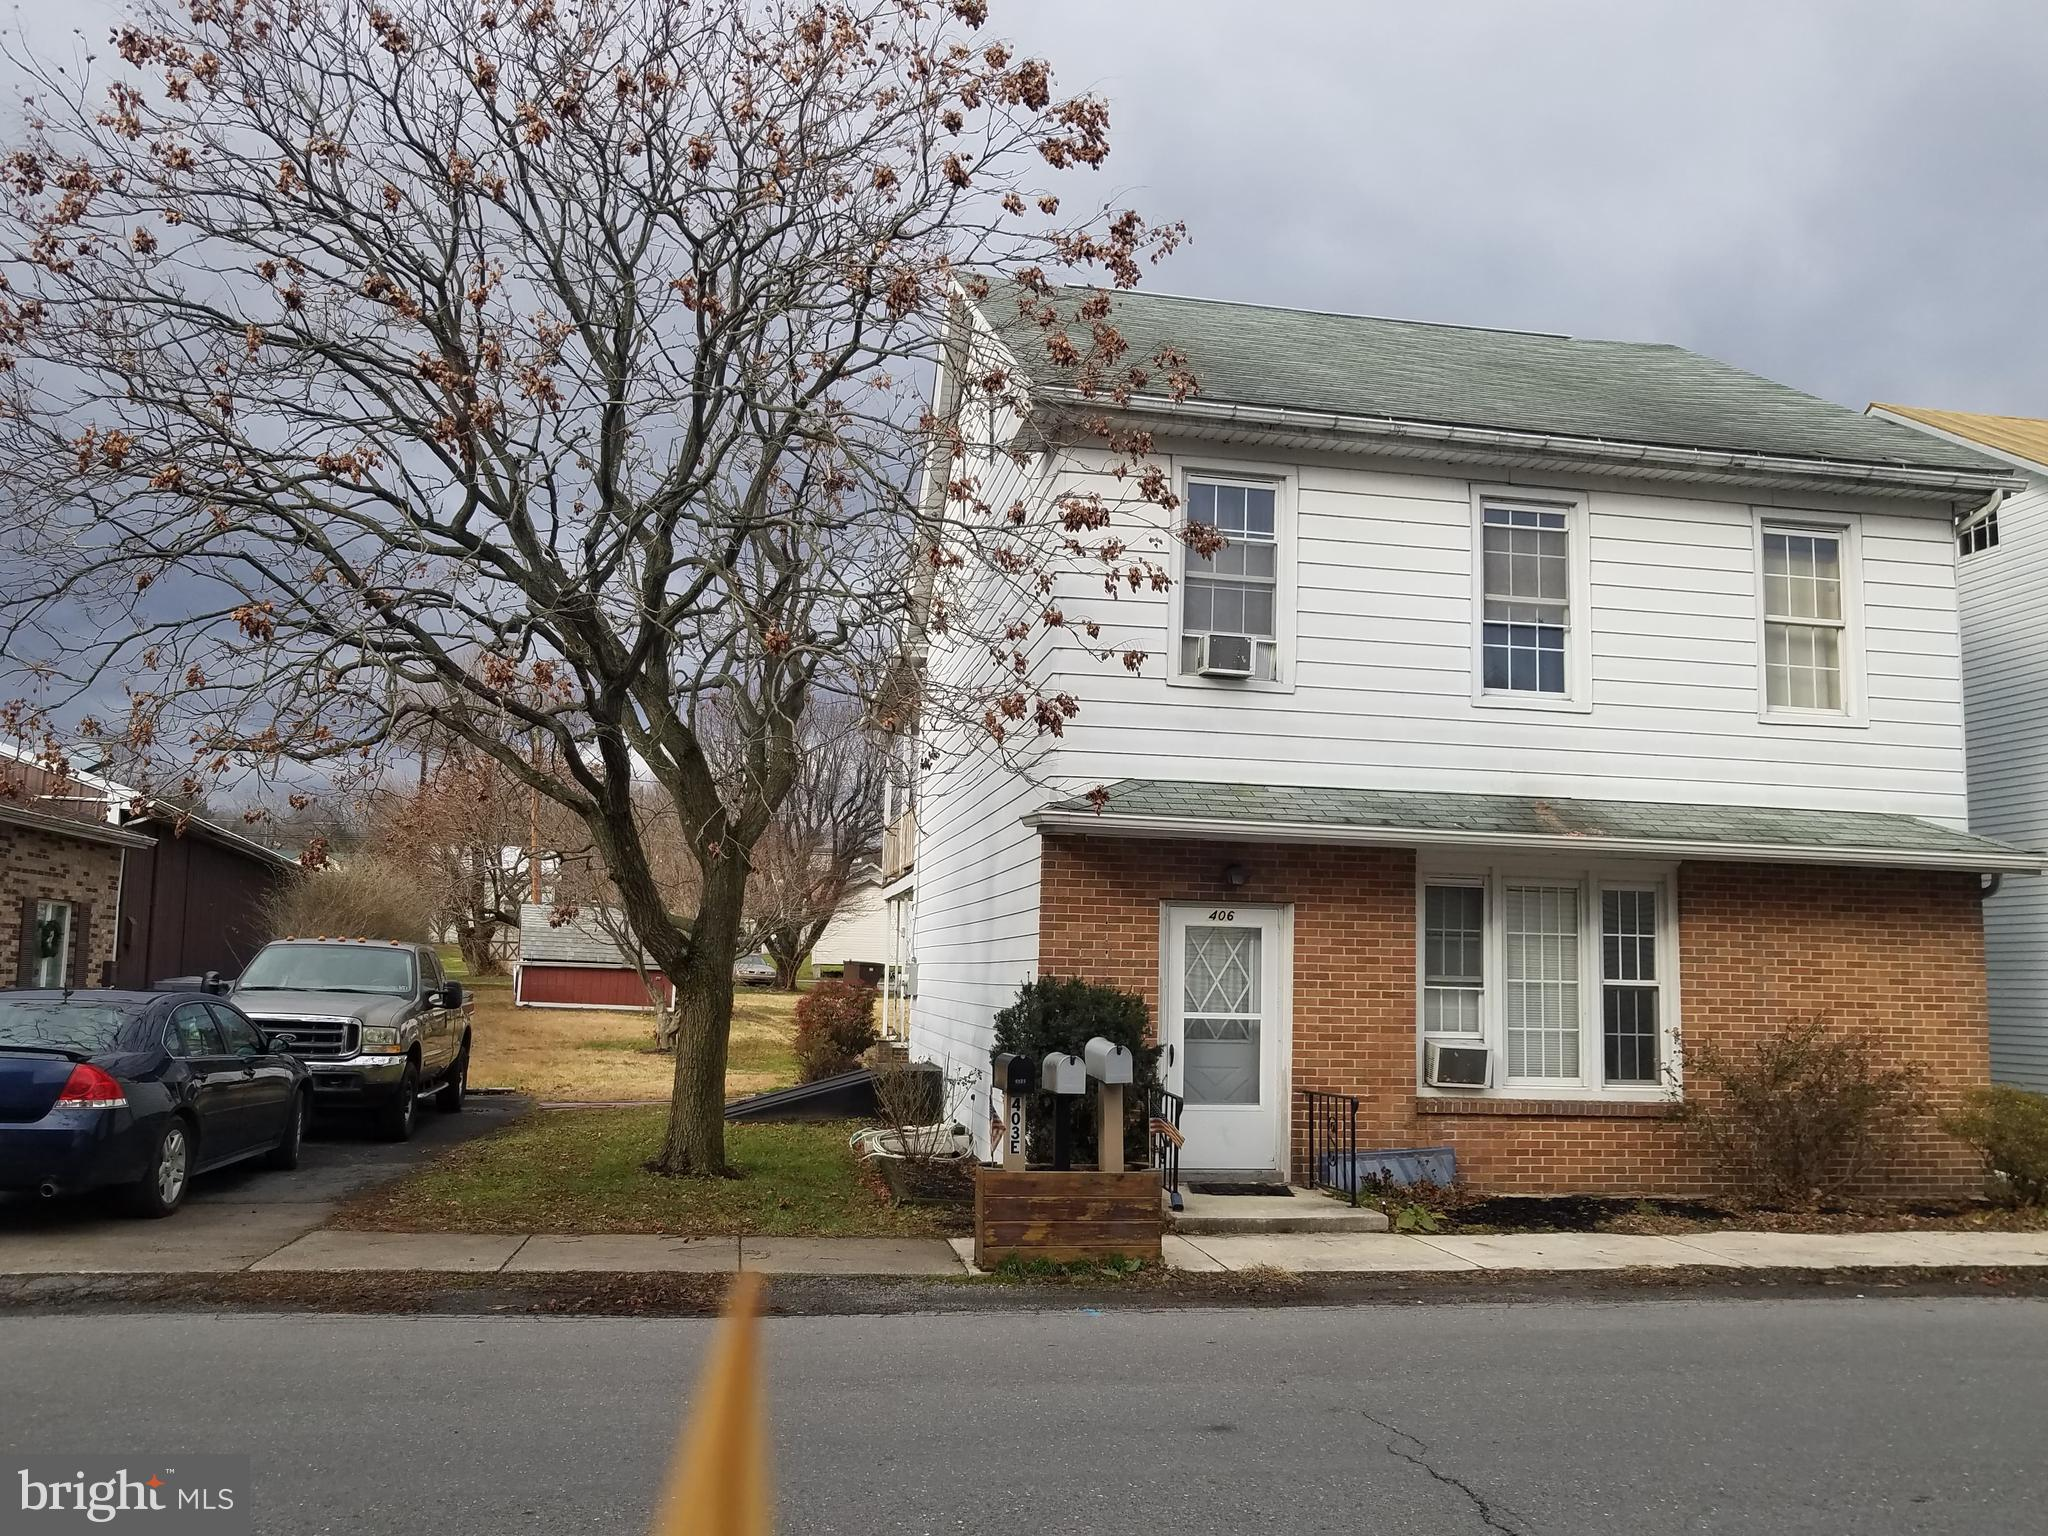 406 N FRONT STREET, LIVERPOOL, PA 17045